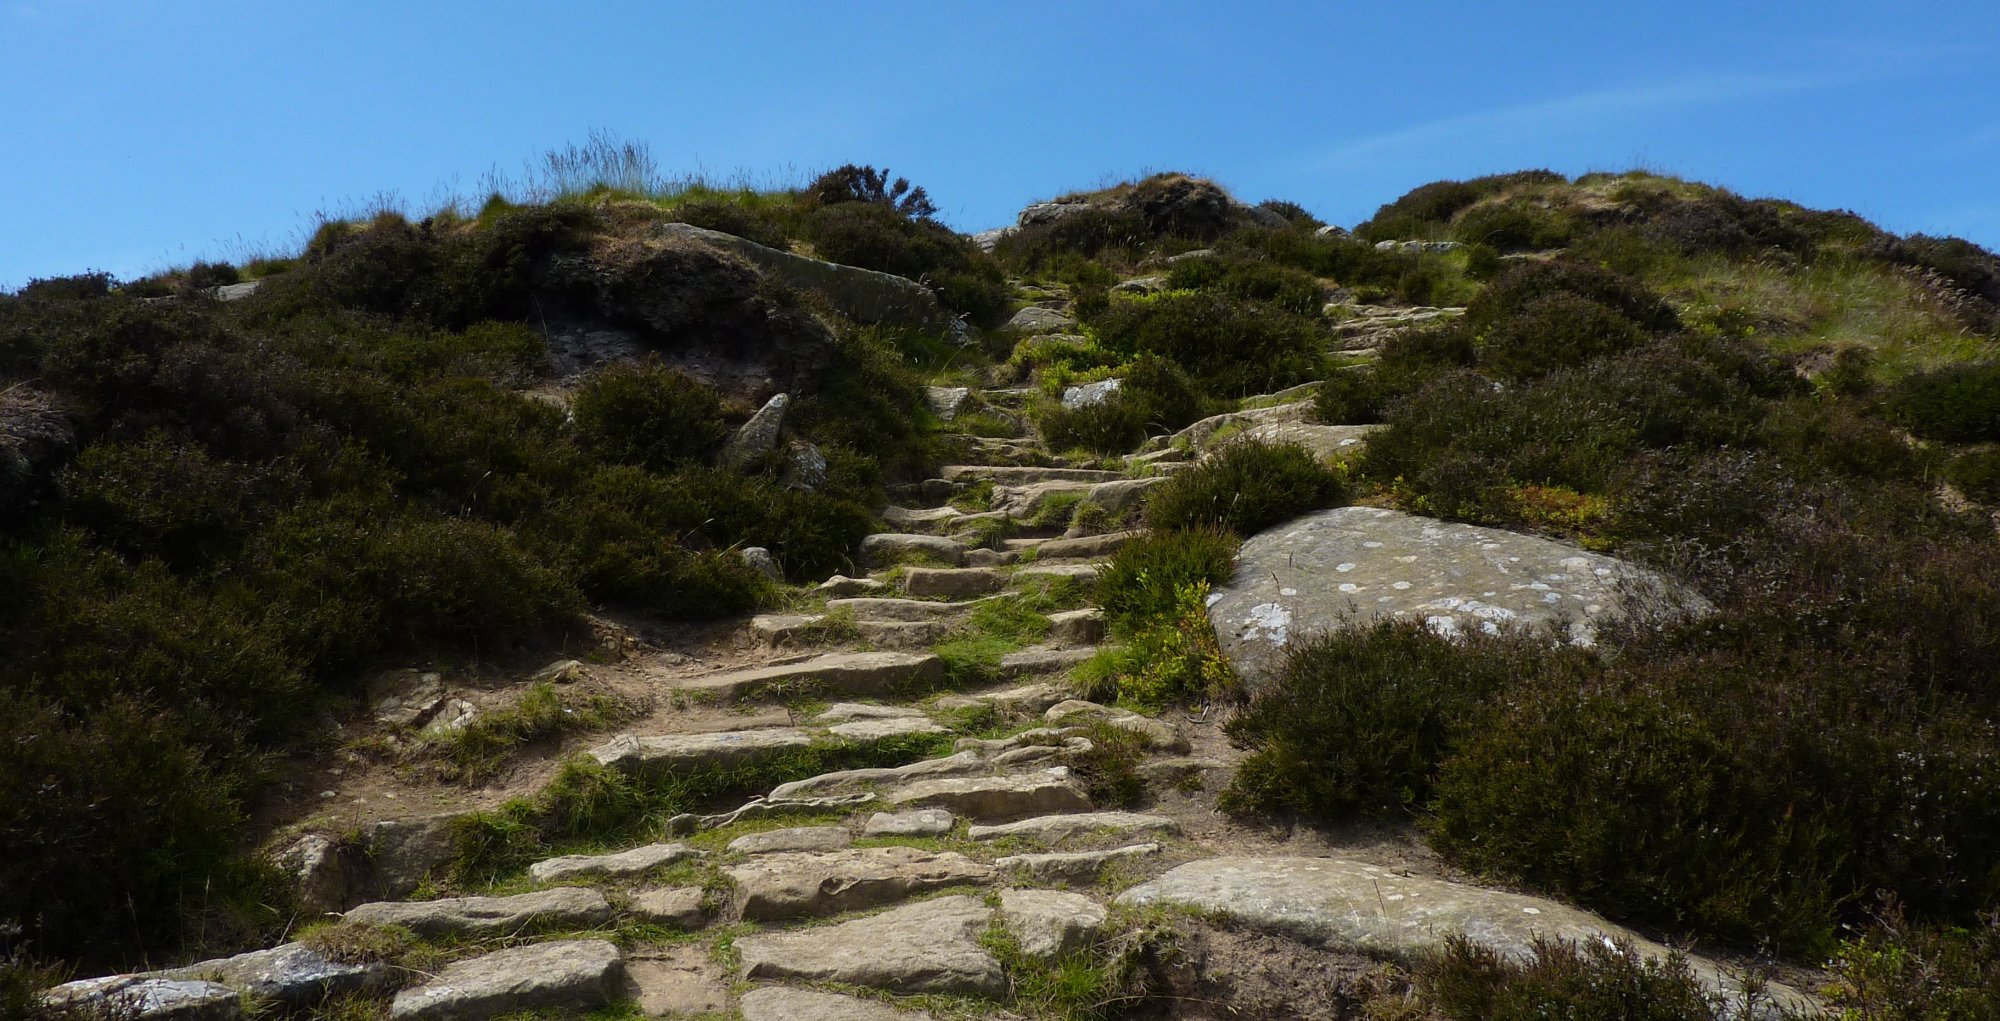 The steep path up to Cringle Moor